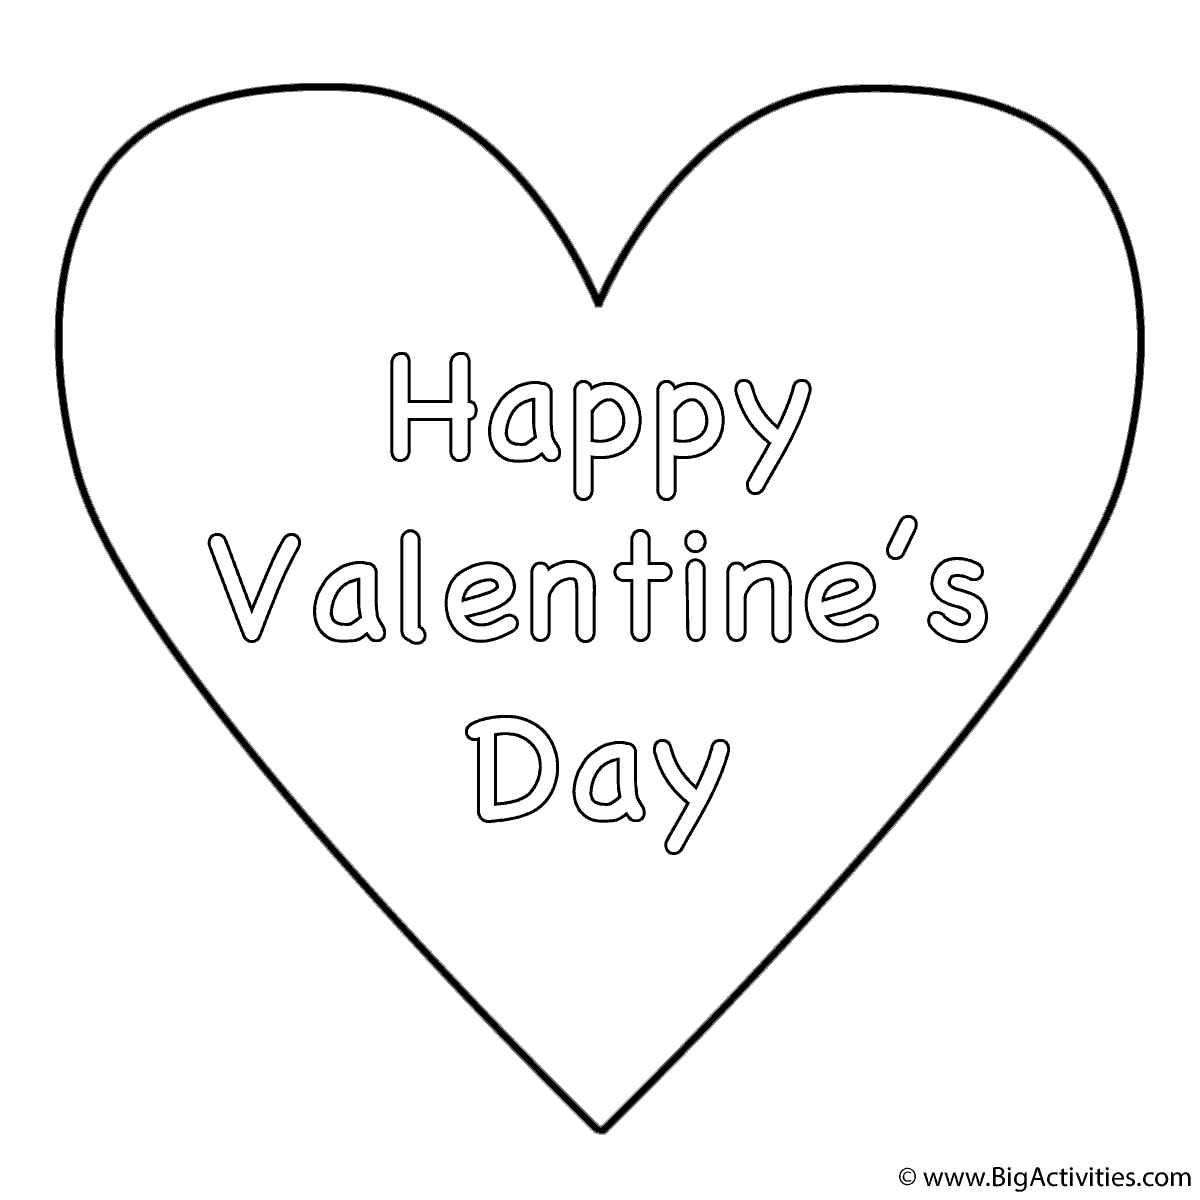 valentines day heart coloring pages valentine heart coloring pages best coloring pages for kids coloring pages valentines heart day